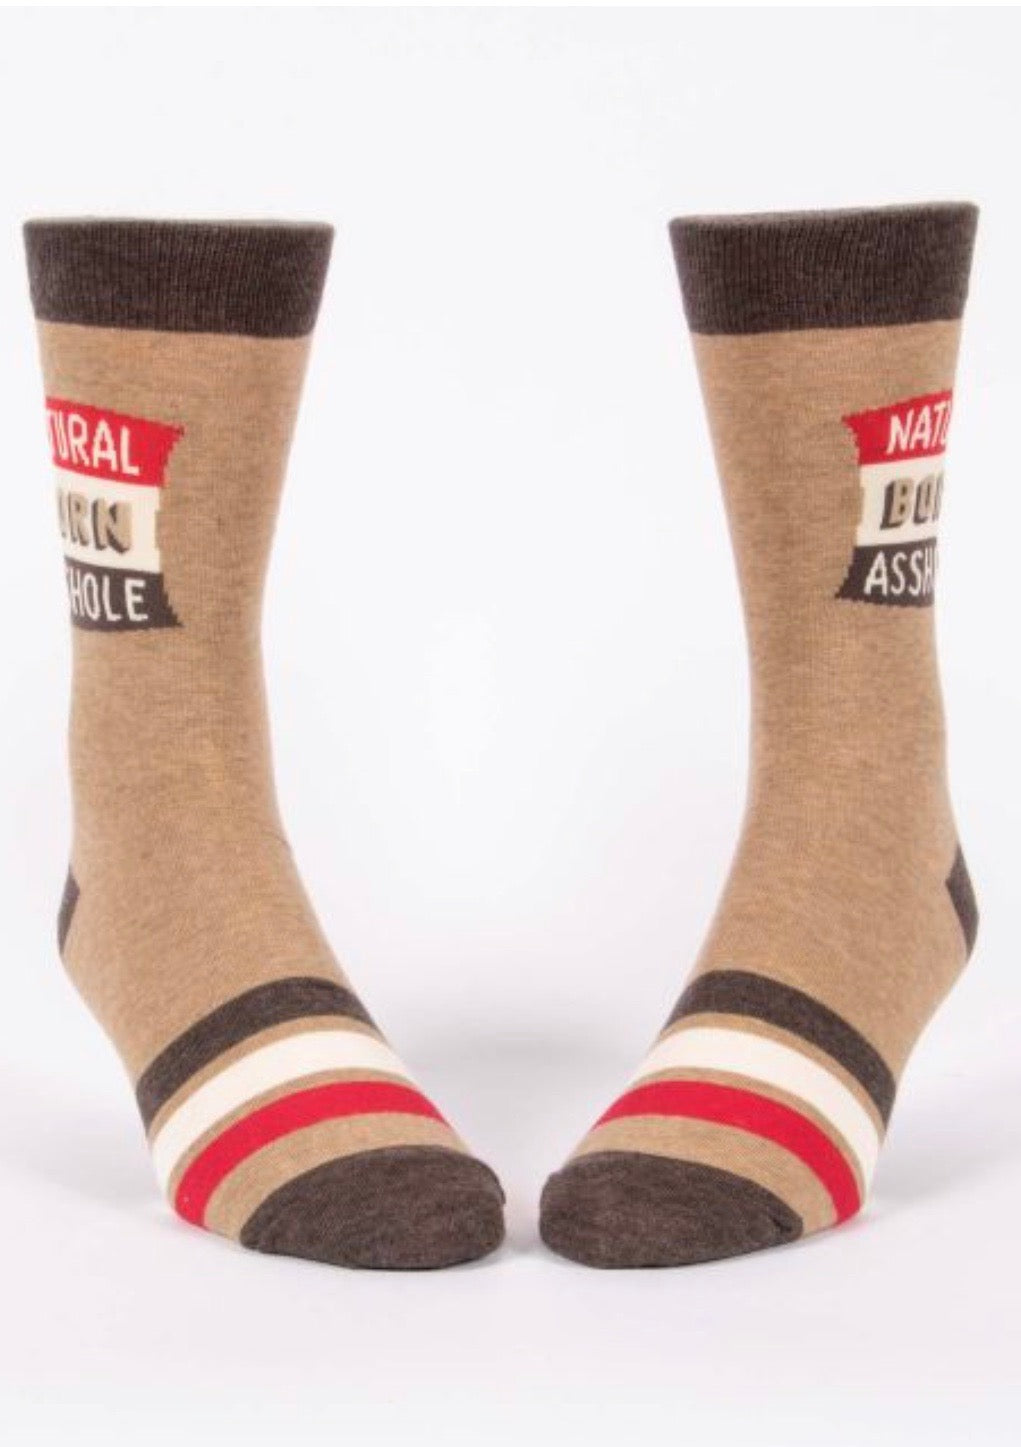 blue-q-SW840-natural-born-asshole-mens-crew-socks-brown